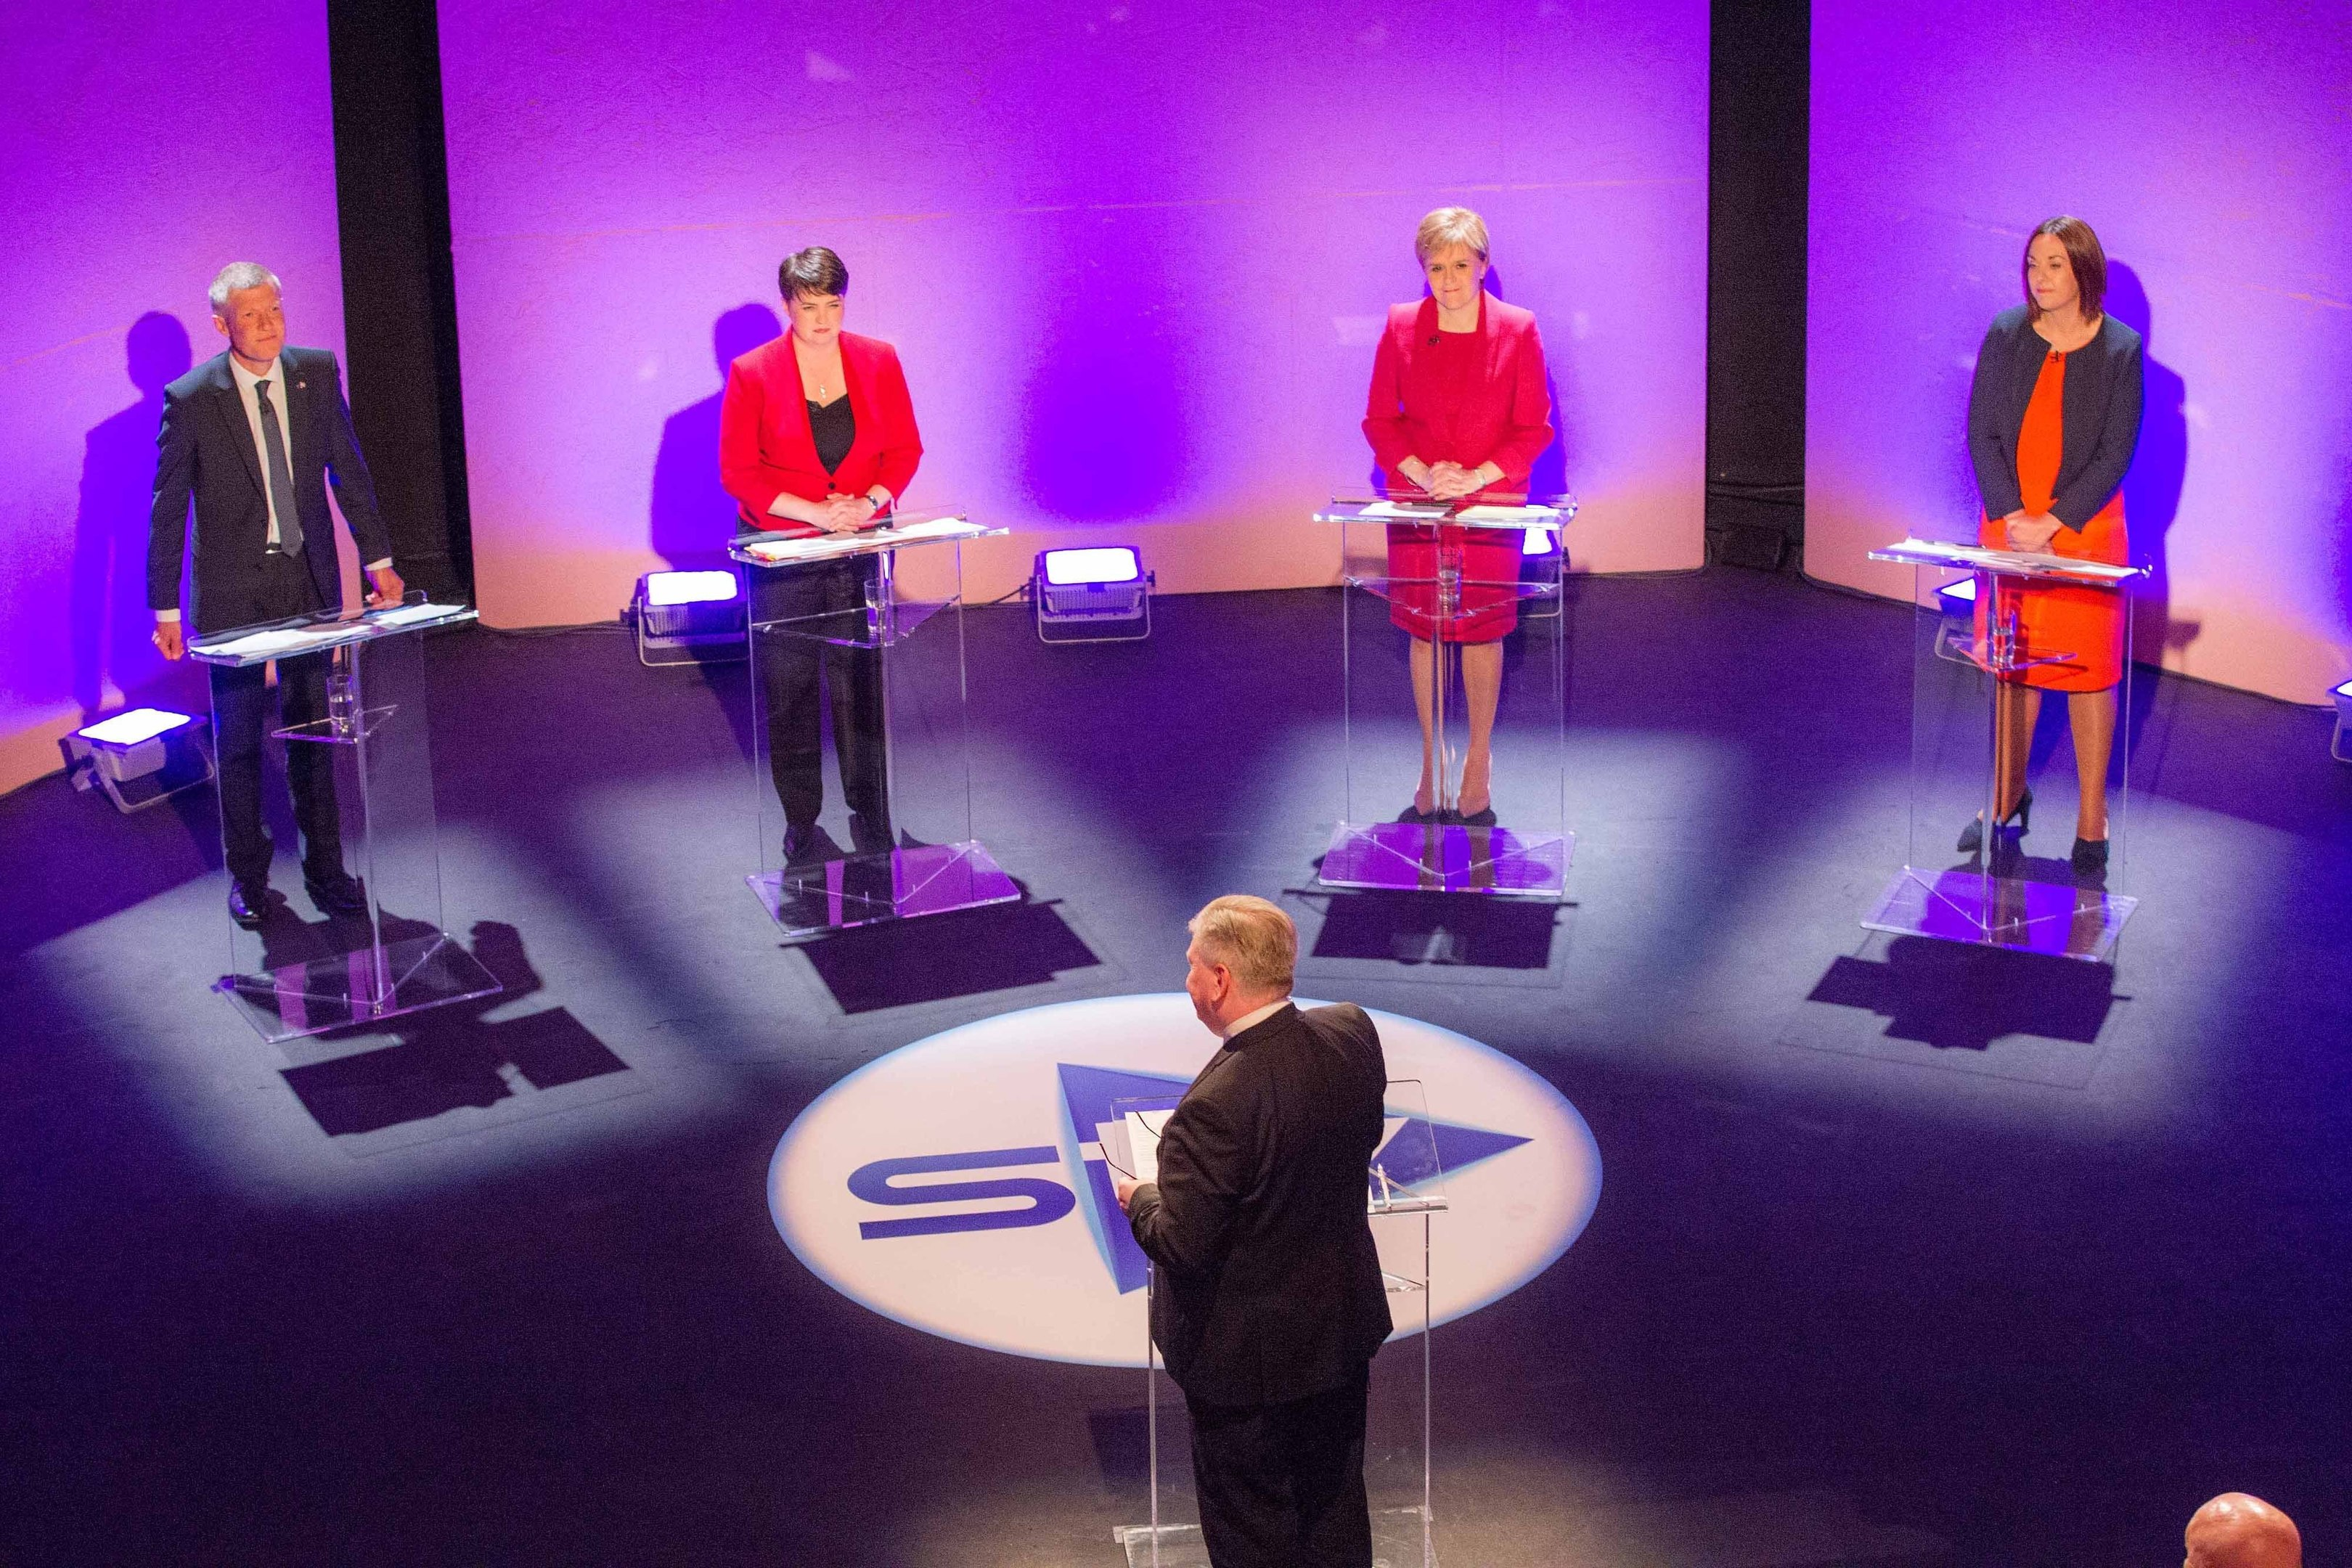 STV's political editor Bernard Ponsonby presents leaders debate with, from left, Scottish Liberal Democrat leader Willie Rennie, Scottish Conservative leader Ruth Davidson, SNP leader Nicola Sturgeon and Scottish Labour leader Kezia Dugdale.